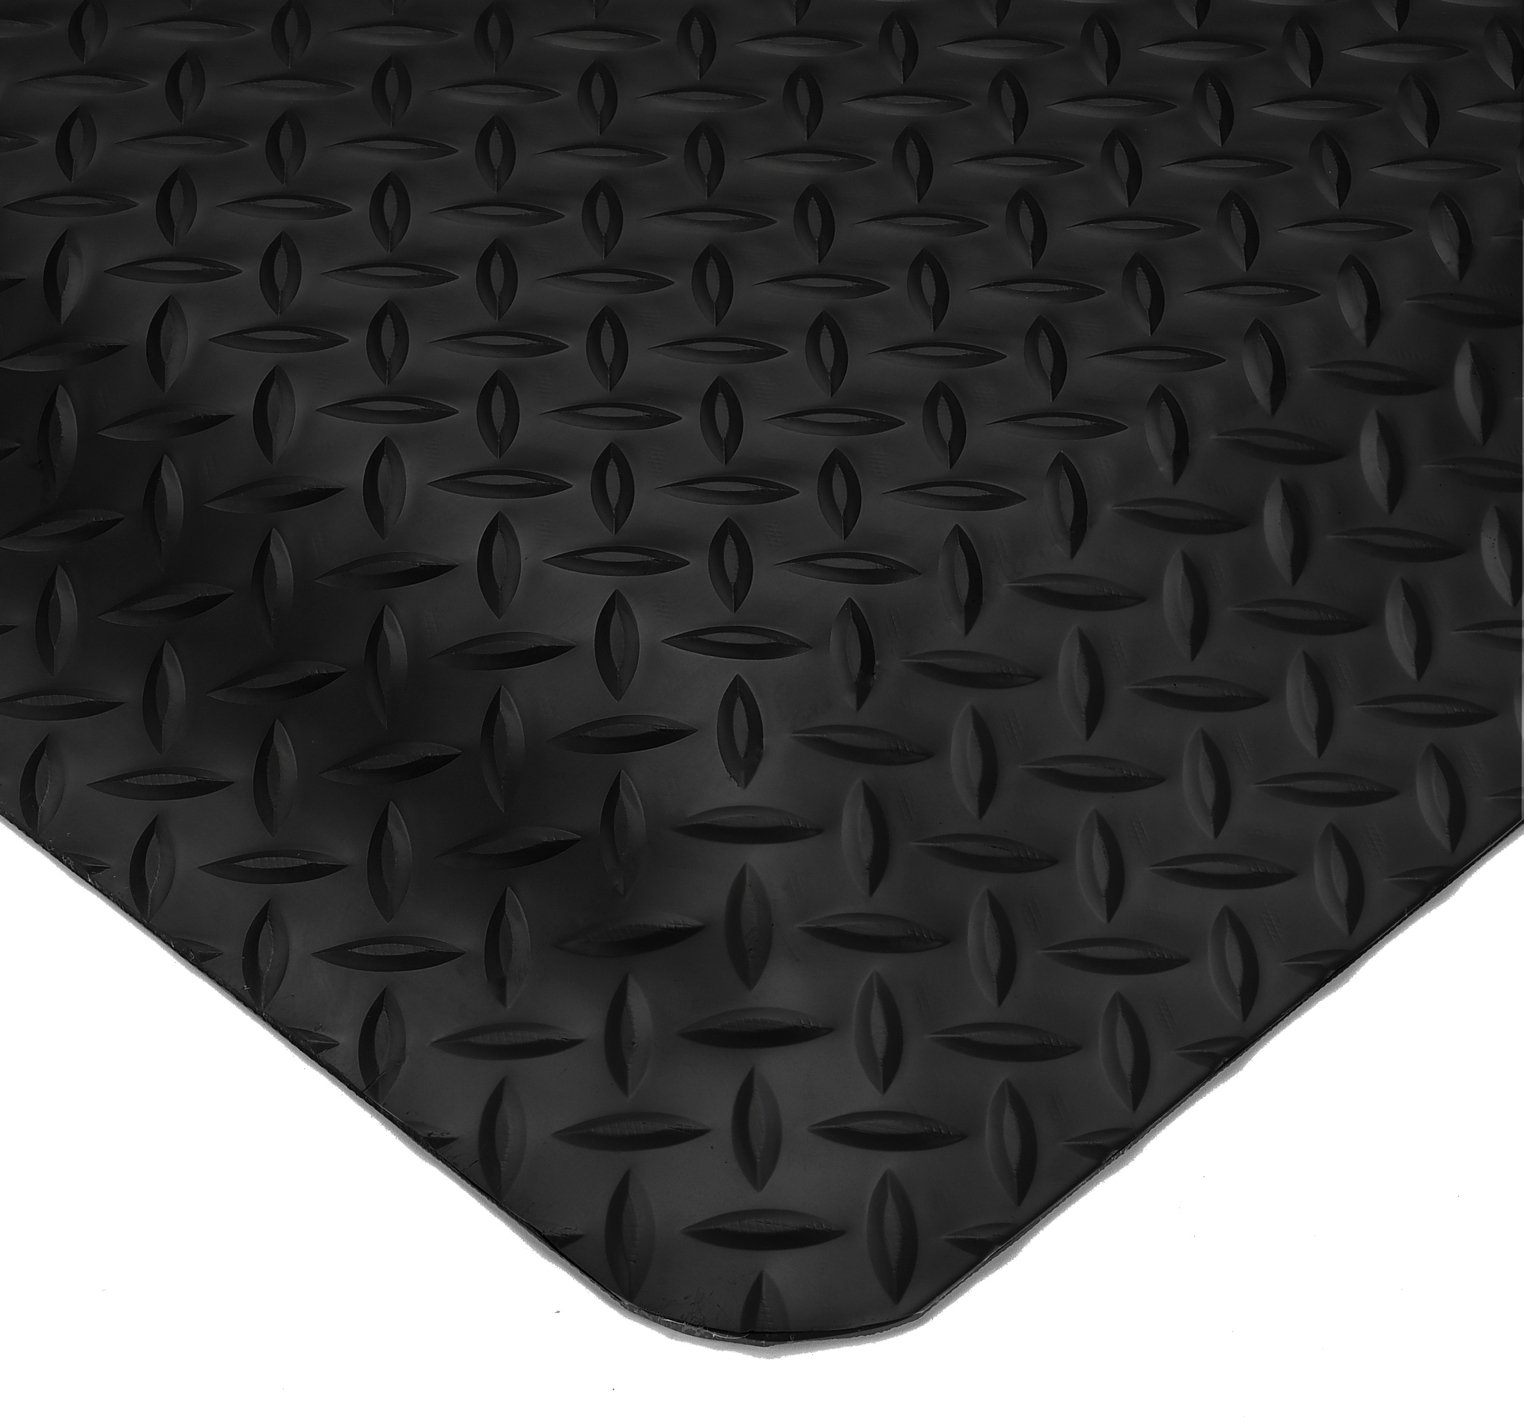 Wearwell PVC 497 Smart Diamond-Plate Medium Duty Anti-Fatigue Mat, Tapered Edges, for Dry Areas, 3' Width x 5' Length x 5/8'' Thickness, Black